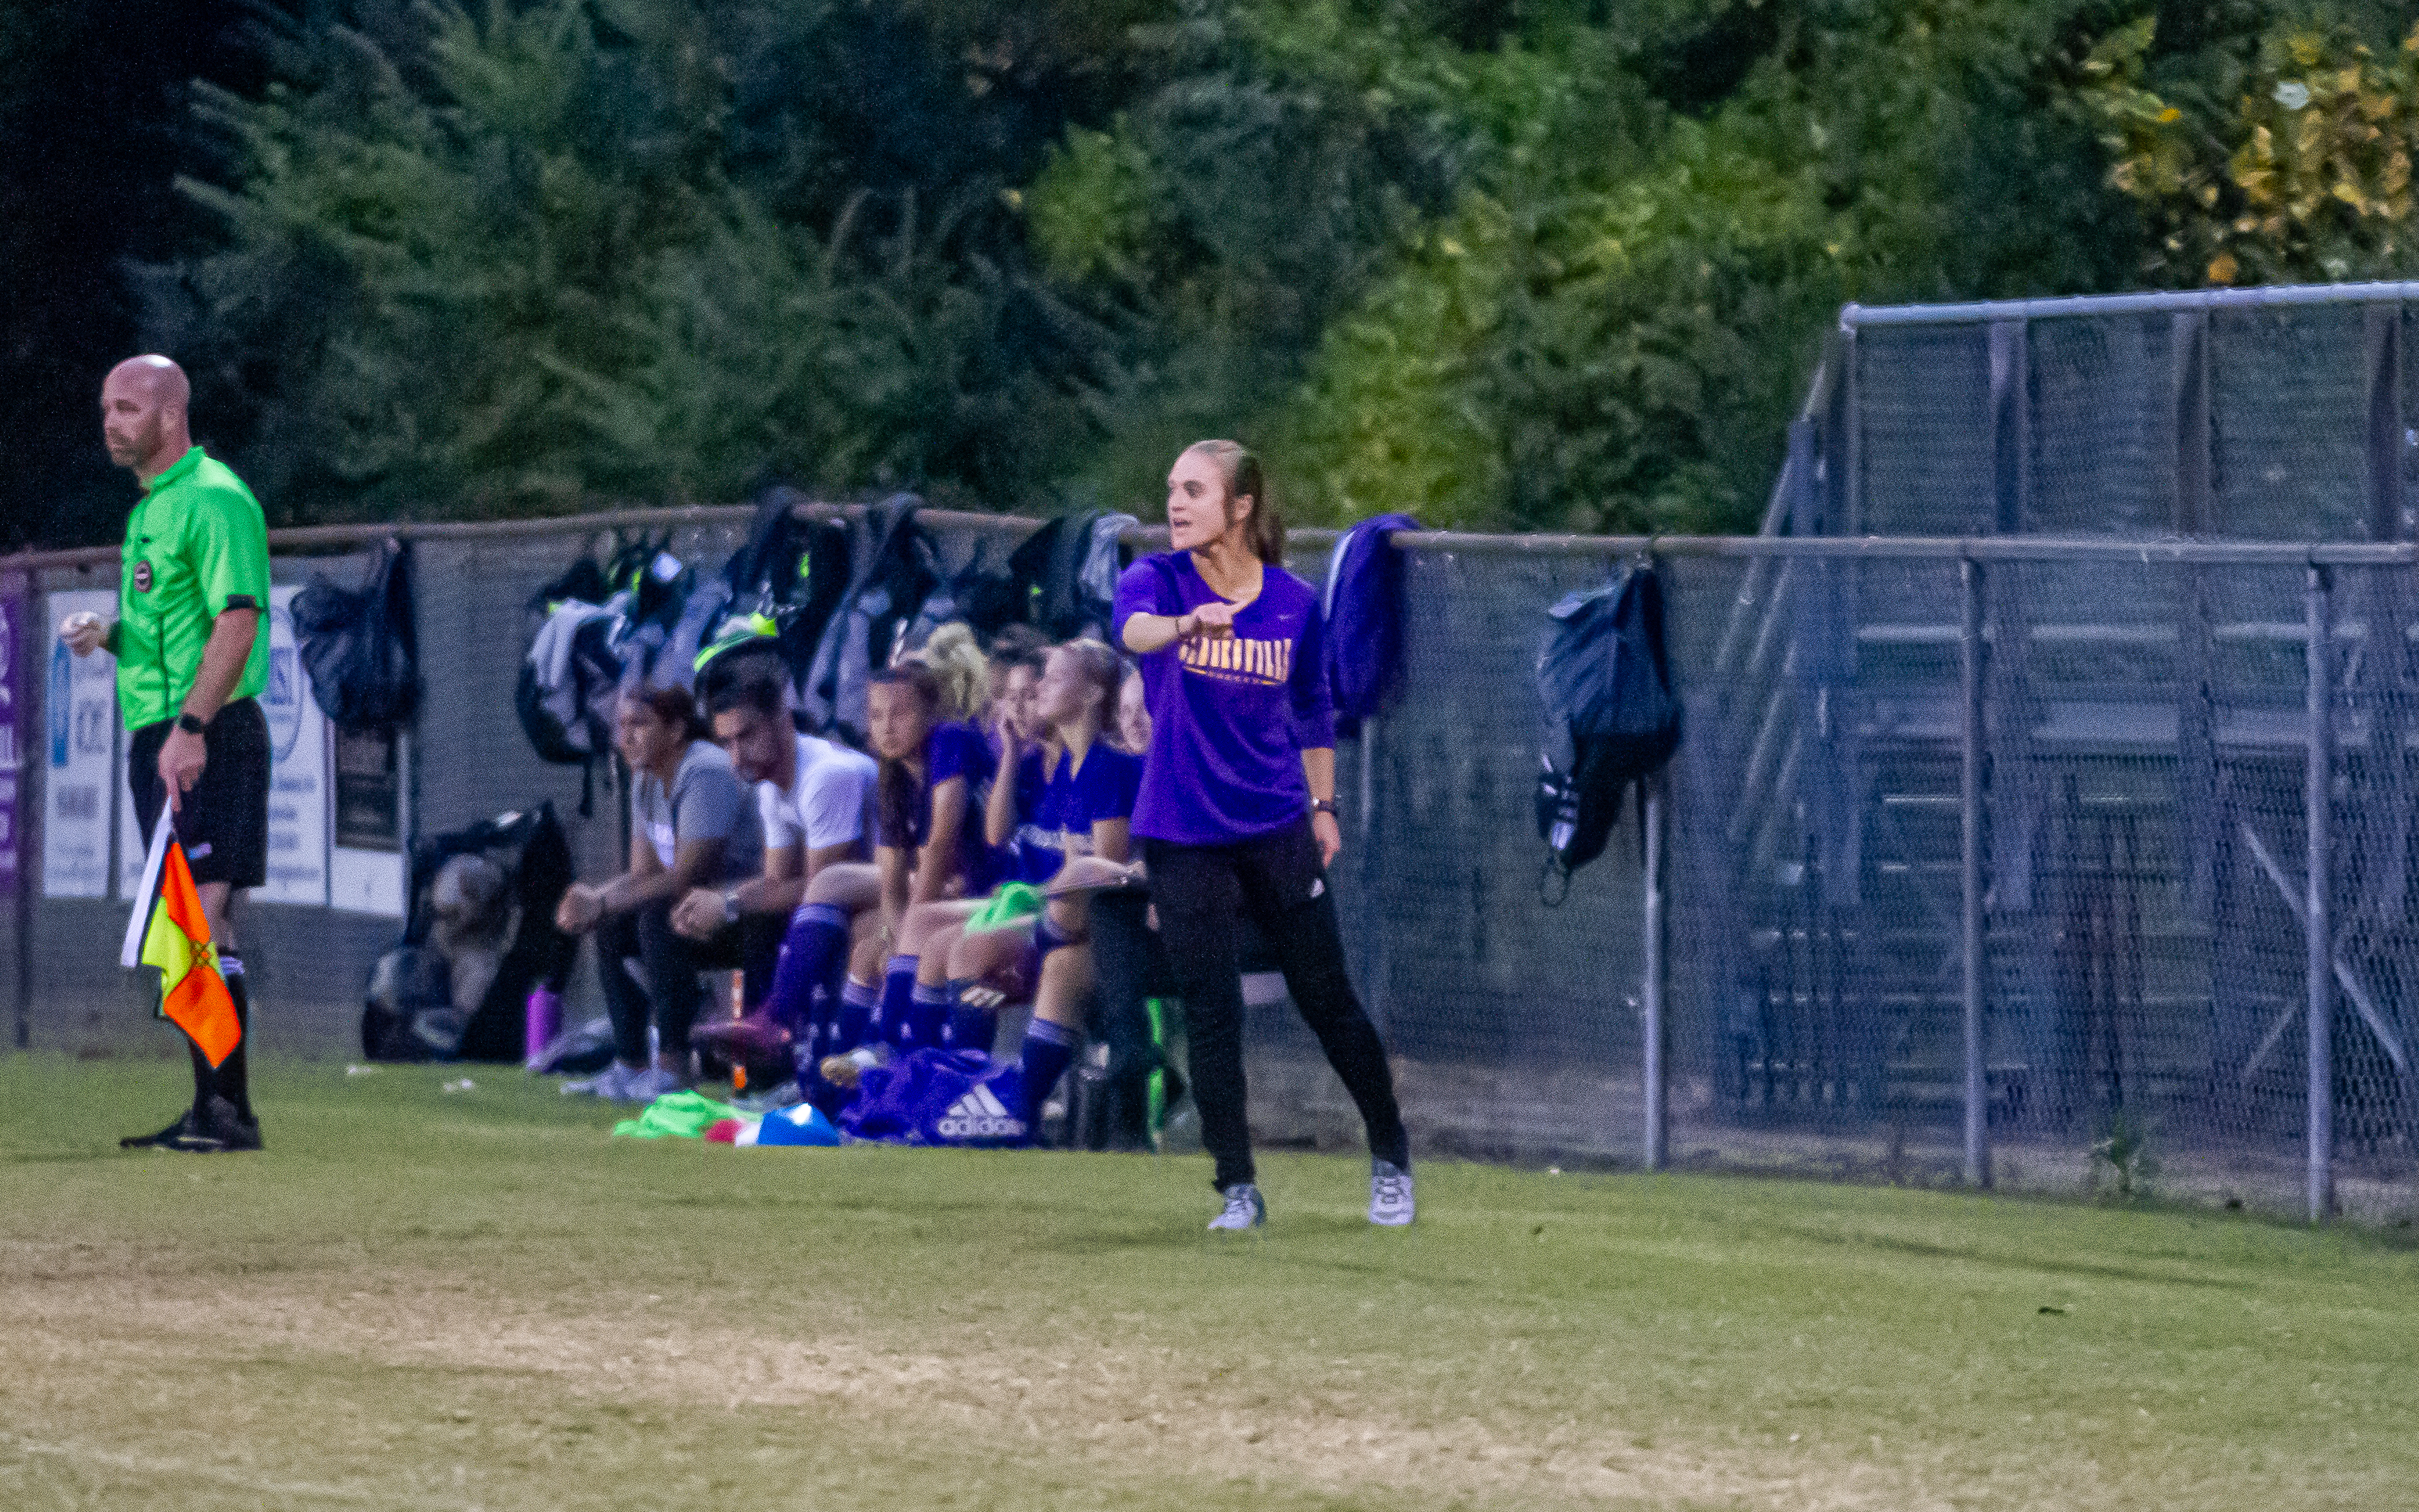 Former Governor Sara Kluttz coaches from the sideline for Clarksville High School. IAN CASTLE | IAN CASTLE PHOTOGRAPHY